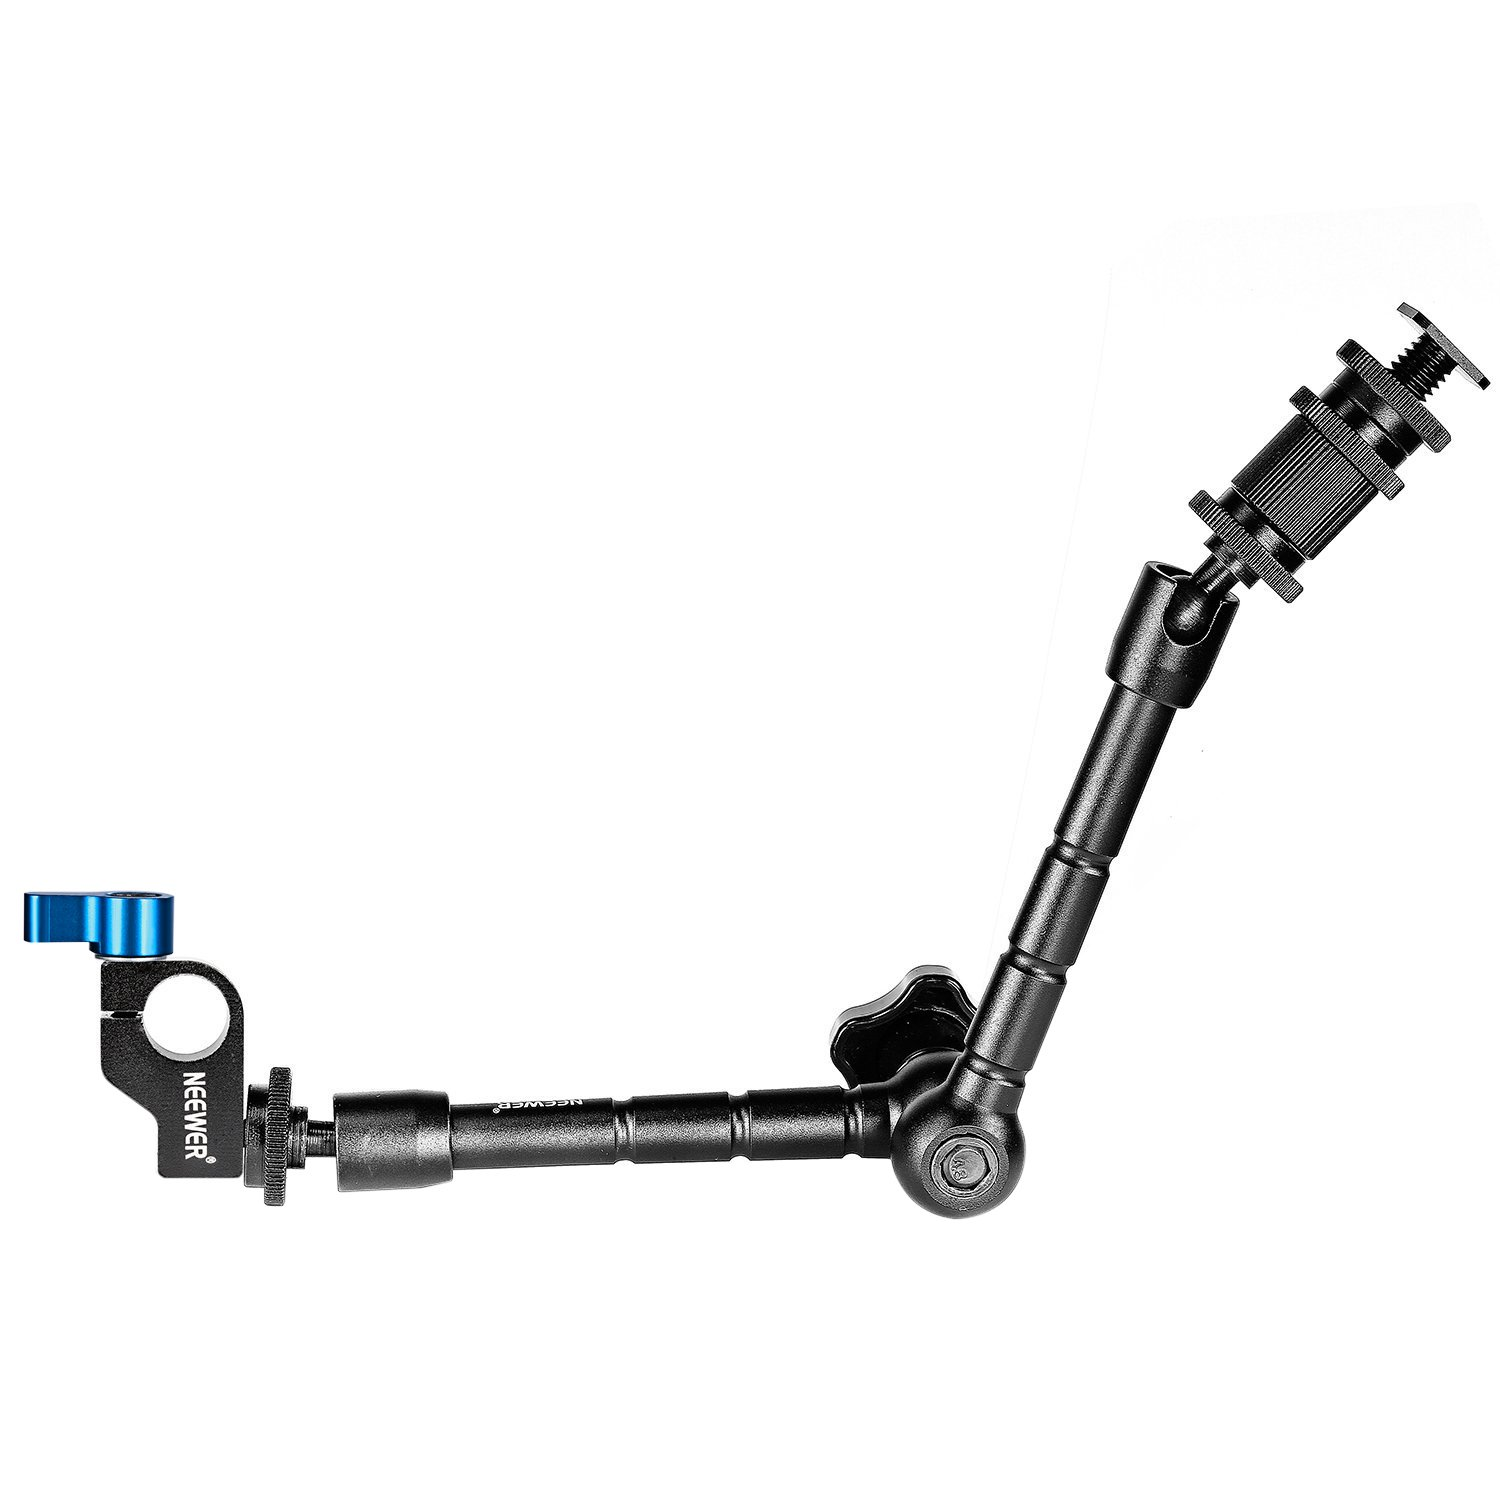 Neewer 11 inches Articulating Magic Arm - Aluminum Alloy Construction with 15mm Metal Rod Clamp for Camera Field Monitor, LED Light, Flash Light, Camera Rig, Movie Rig up to 4.4 pounds/2 kilograms 10090256